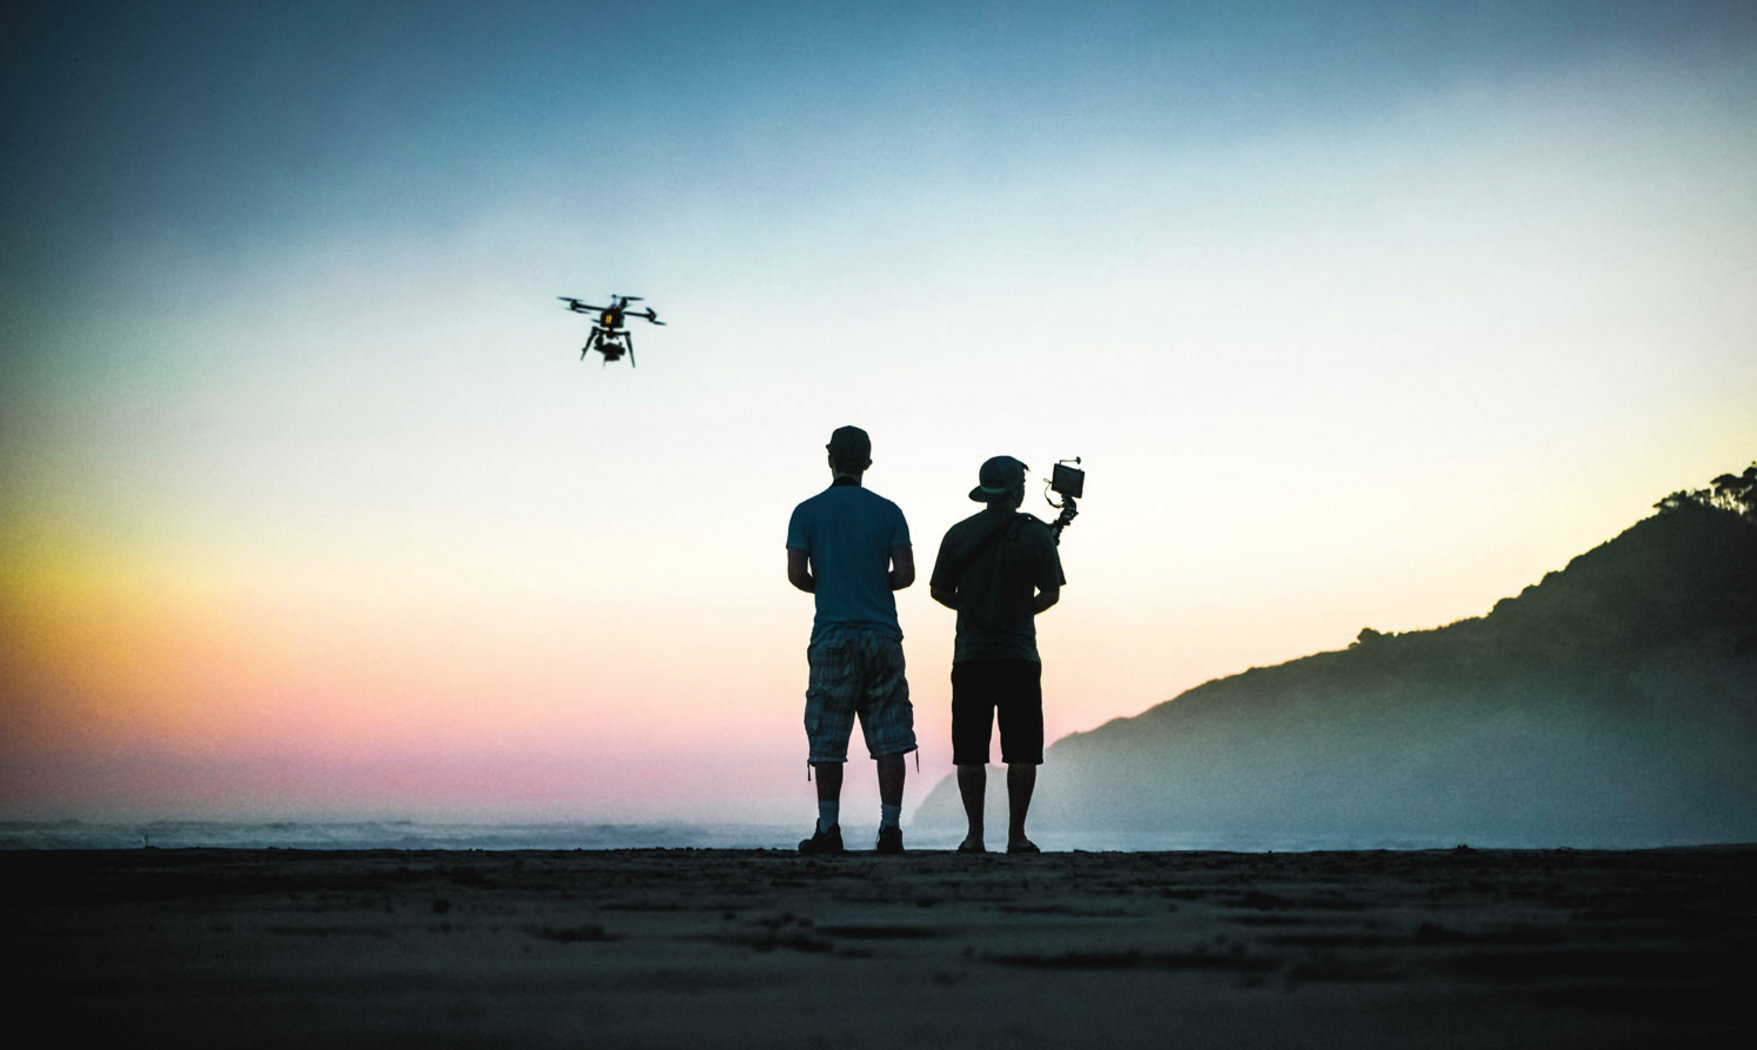 NAVIGATE THE FAA LAWS    BUY THE RIGHT GEAR    FLY WITH PRECISION    FILM CINEMATIC DRONE SHOTS    EDIT AND CREATE AN IMPACTFUL AND STUNNING DEMO REEL    NAVIGATE THE BUSINESS SIDE OF THE DRONE INDUSTRY    GET JOBS    MAKE $$$